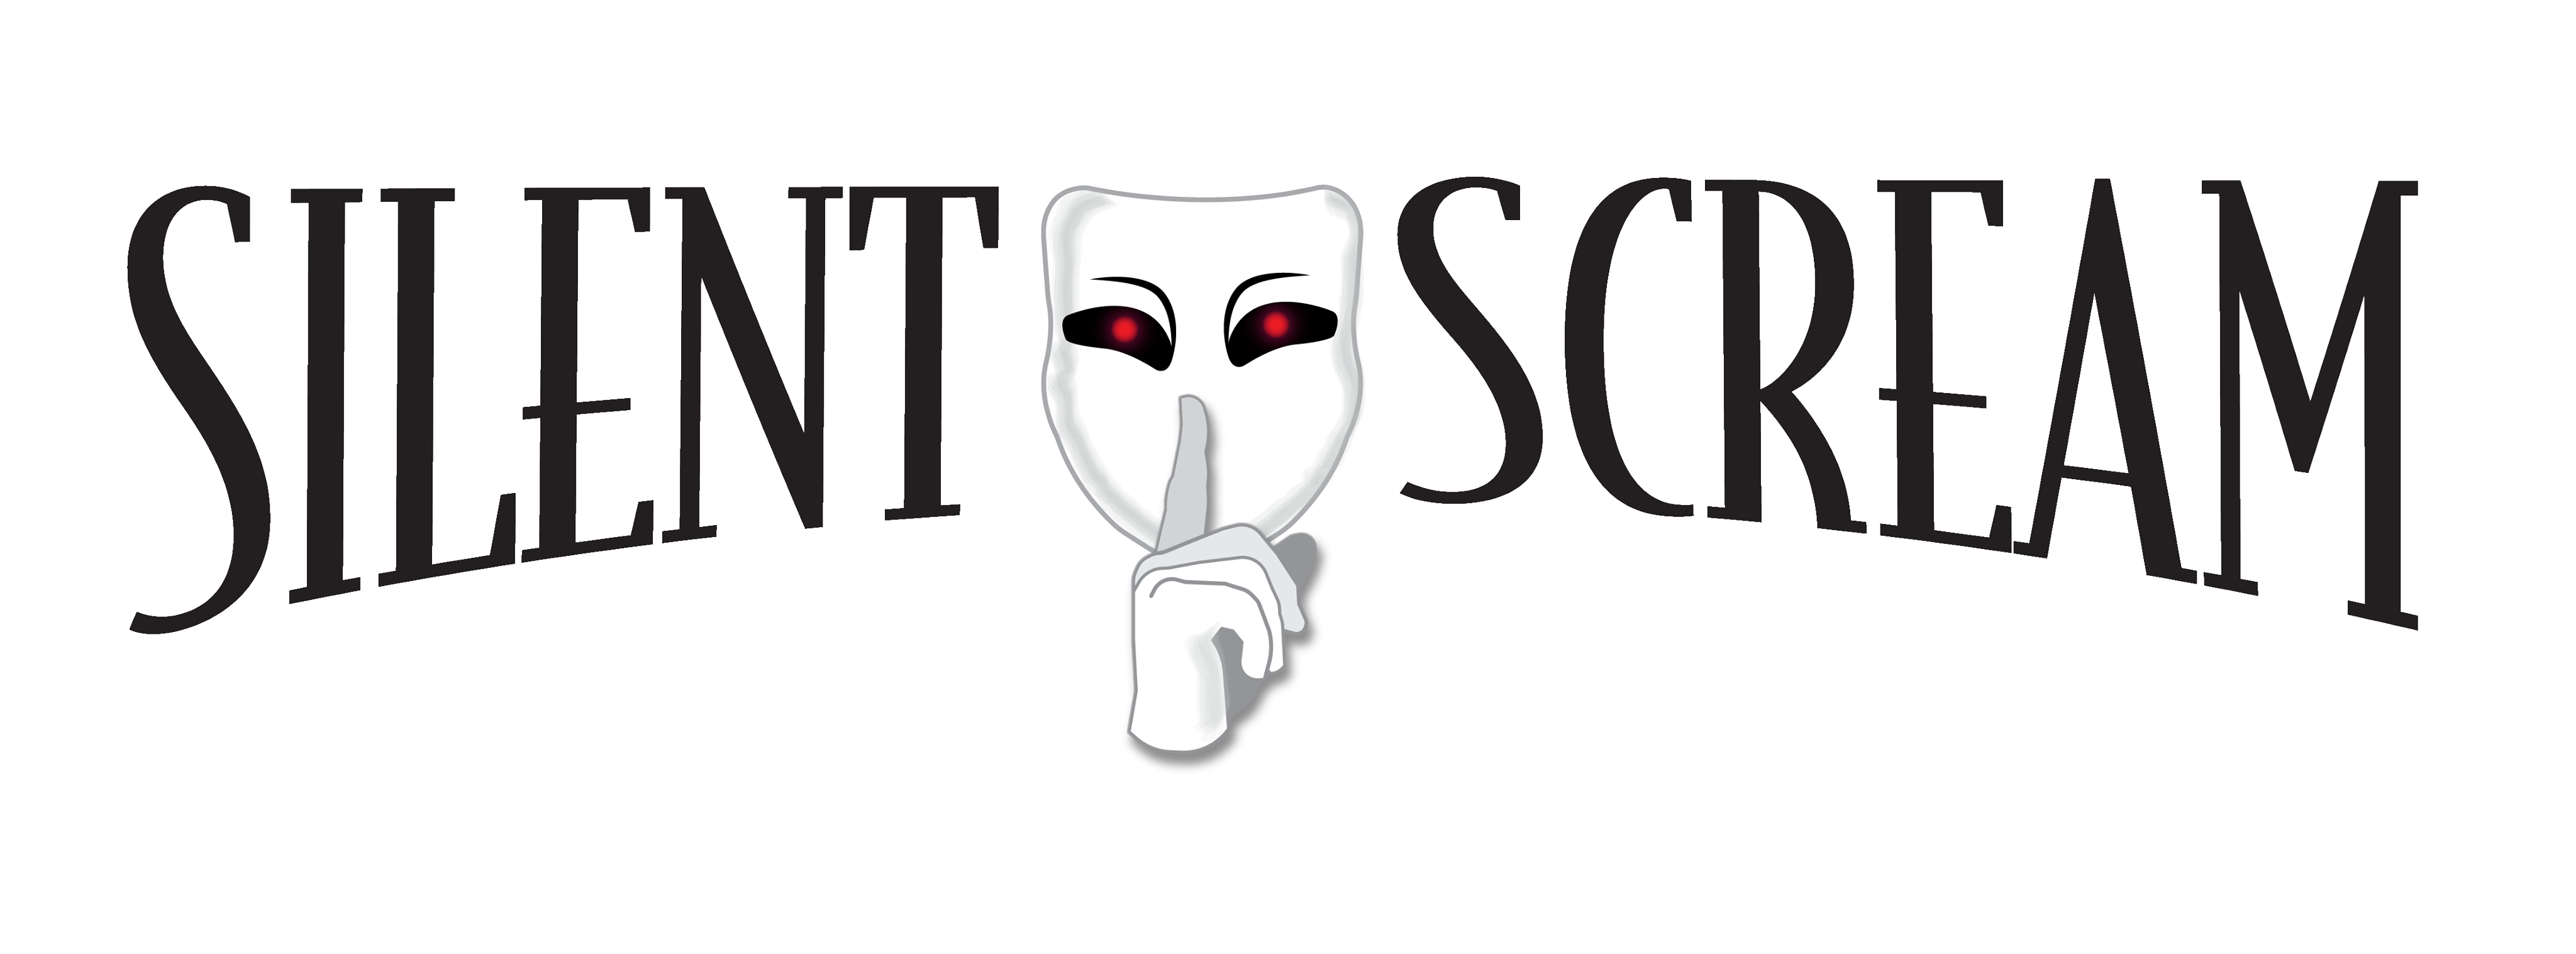 TC_Silent Scream logo